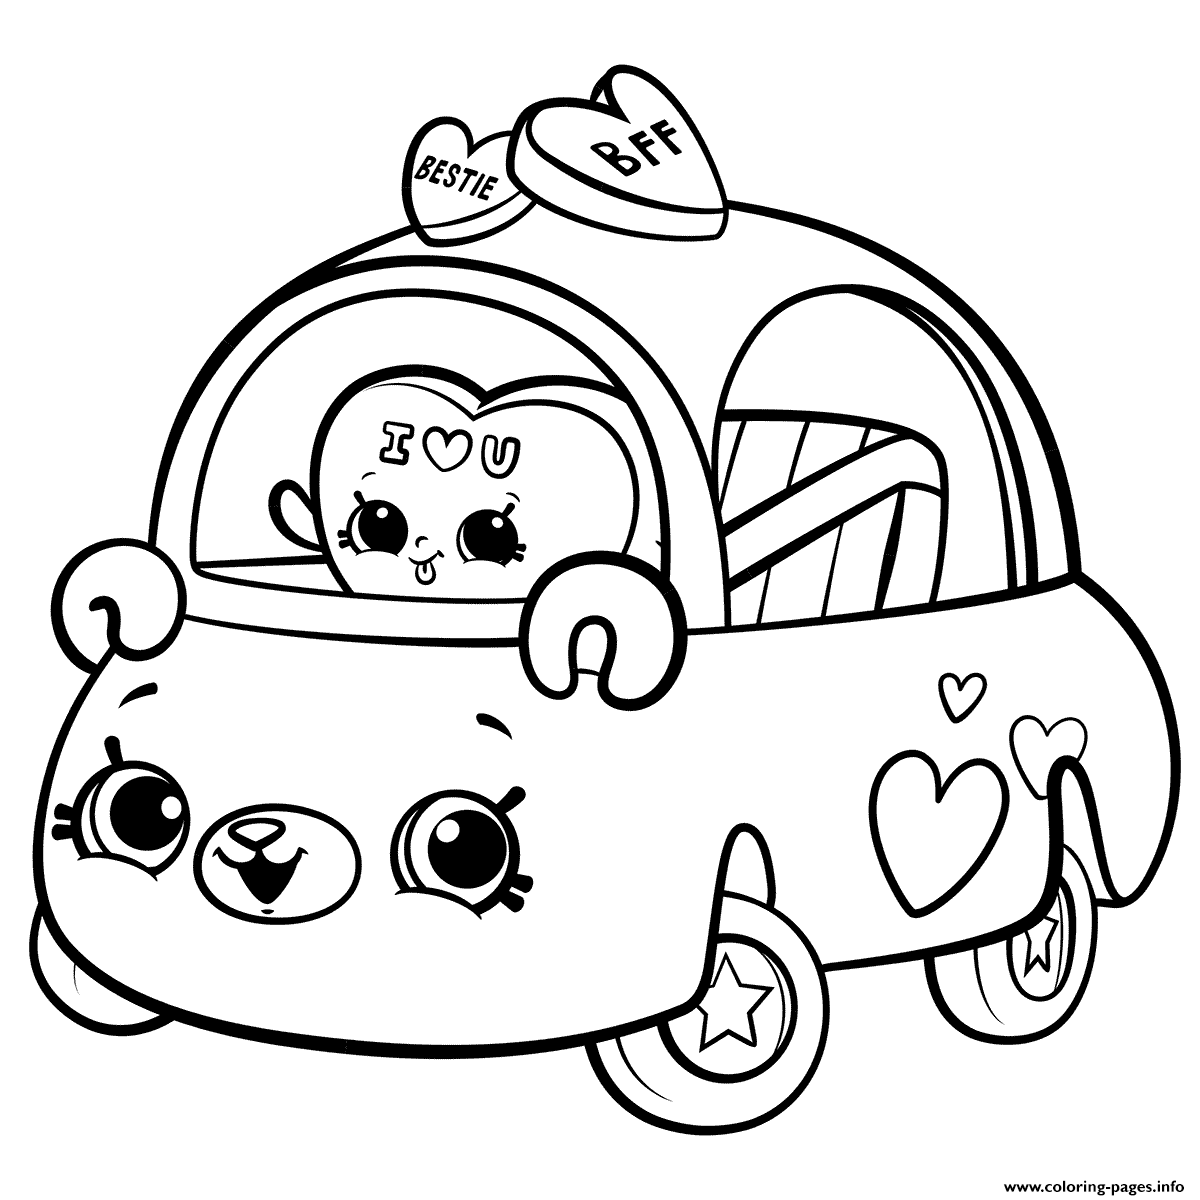 Coloring Pages For Girls: Cutie Cars For Girls Coloring Pages Printable